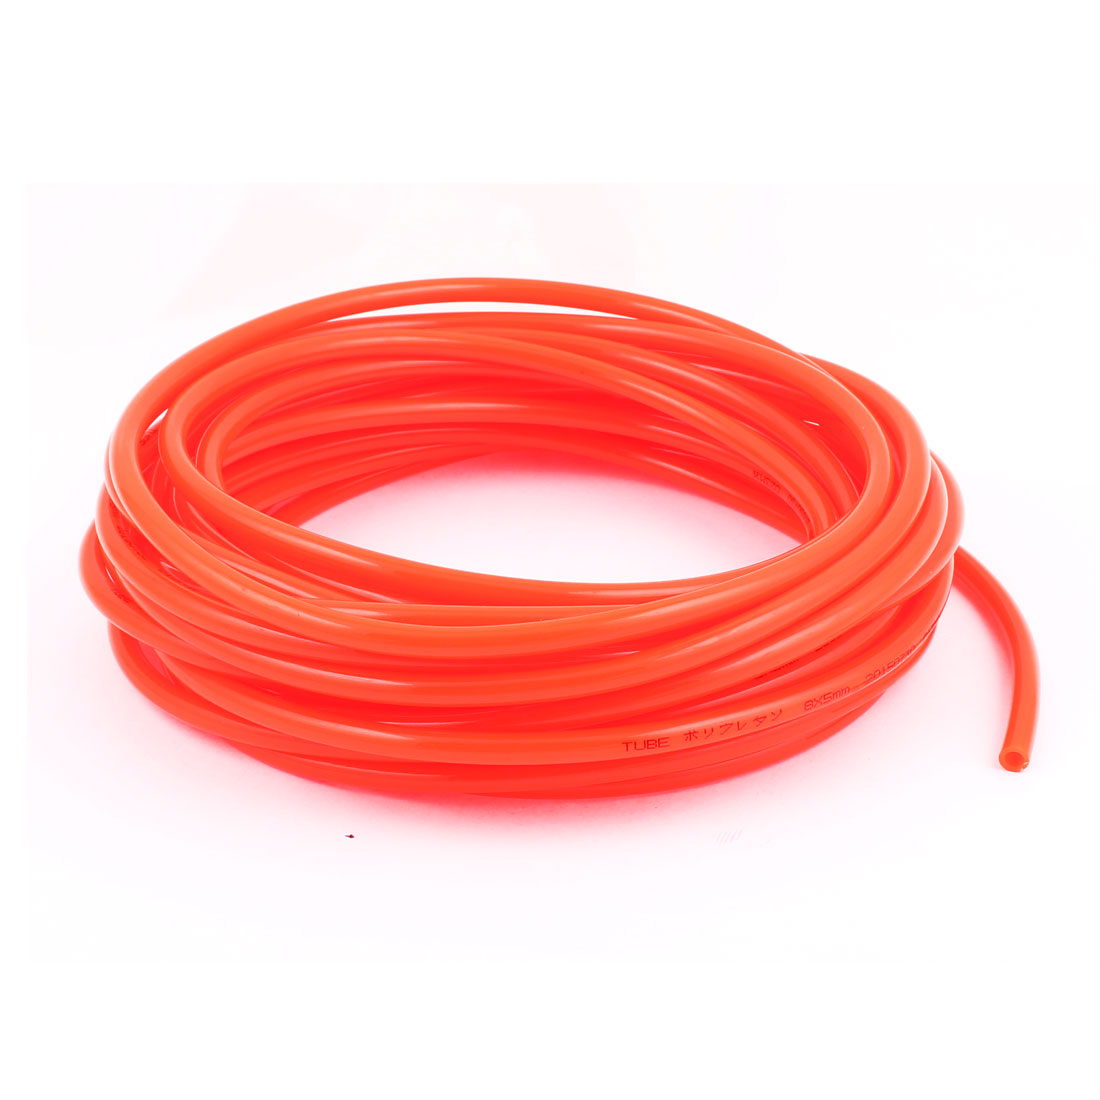 12M 39Ft Long 8mm OD 5mm Inner Dia Red Polyurethane PU Air Pneumatic Hose Pipe Tube